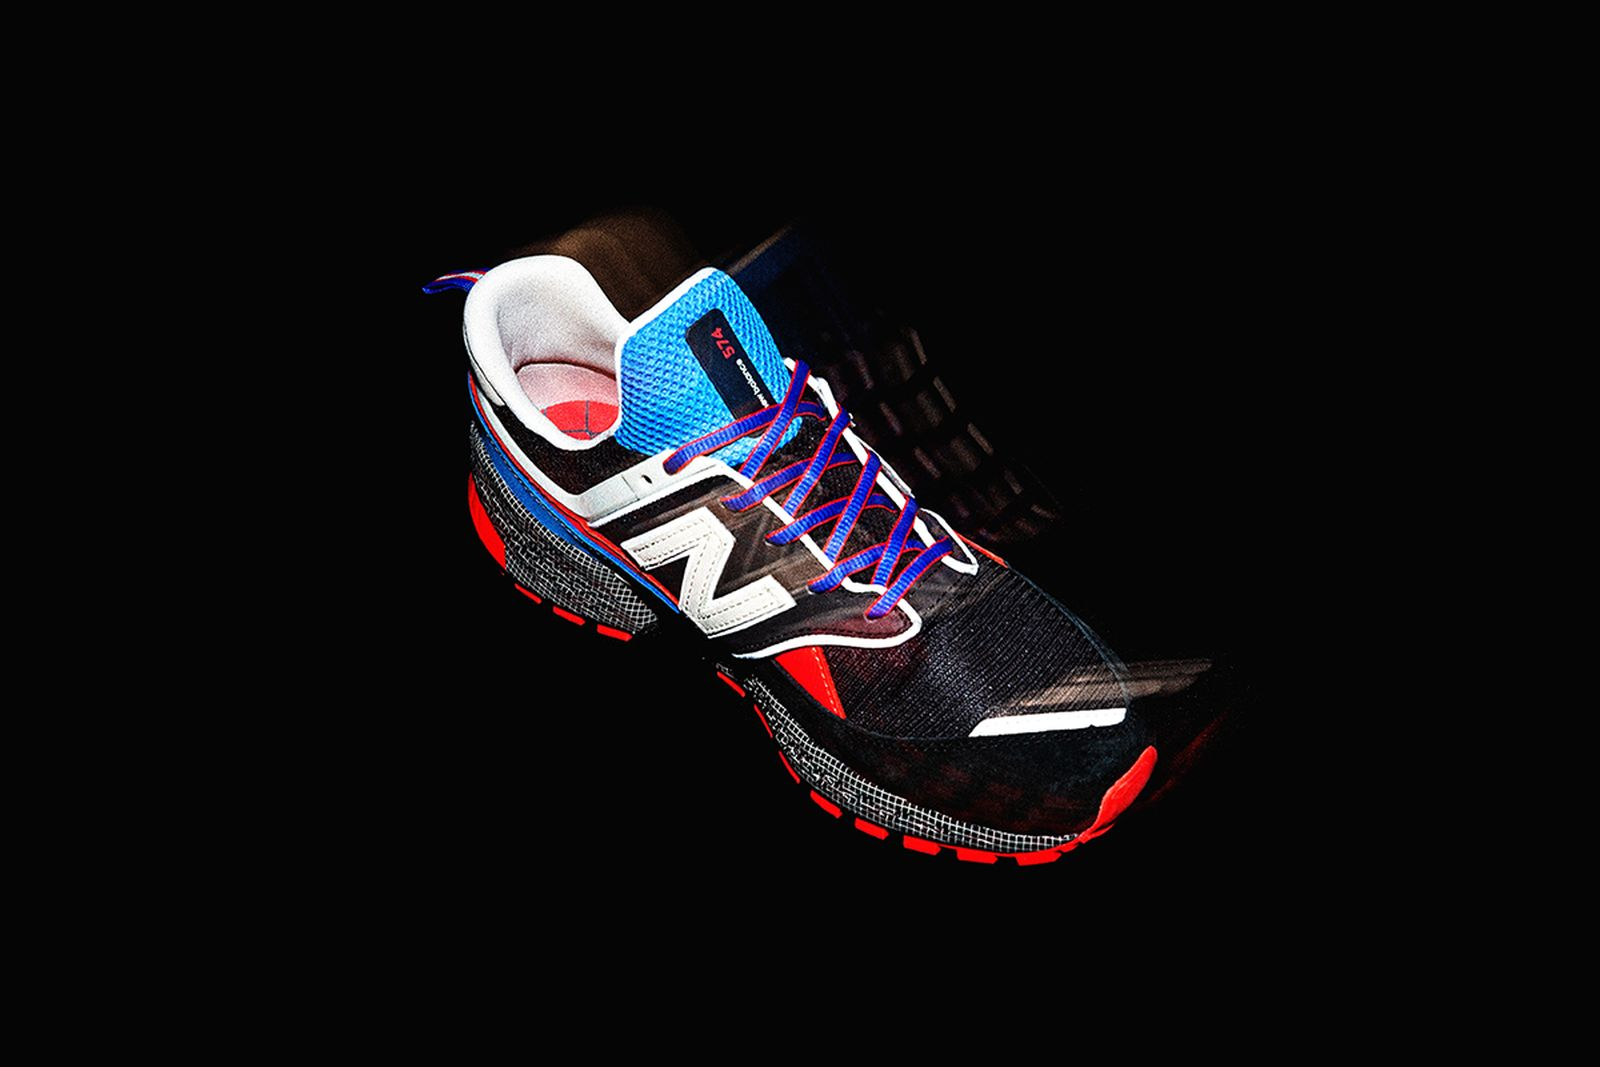 mita sneakers whiz limited new balance ms574 v2 release date price